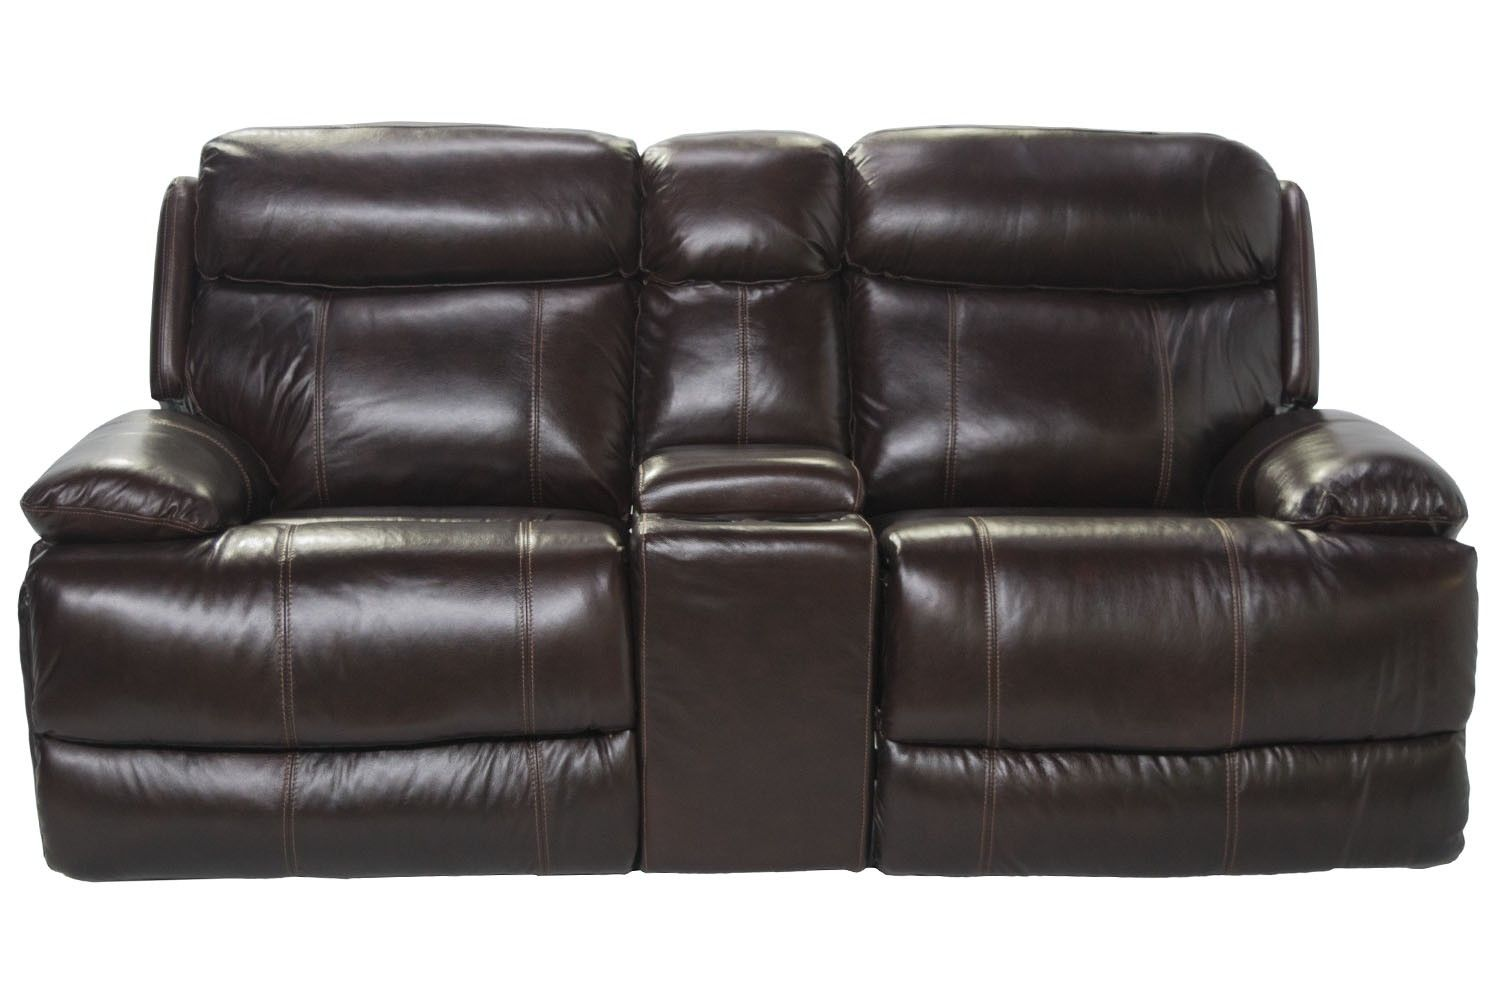 Chairs For Less Mor Furniture For Less The Sansa Leather Seating